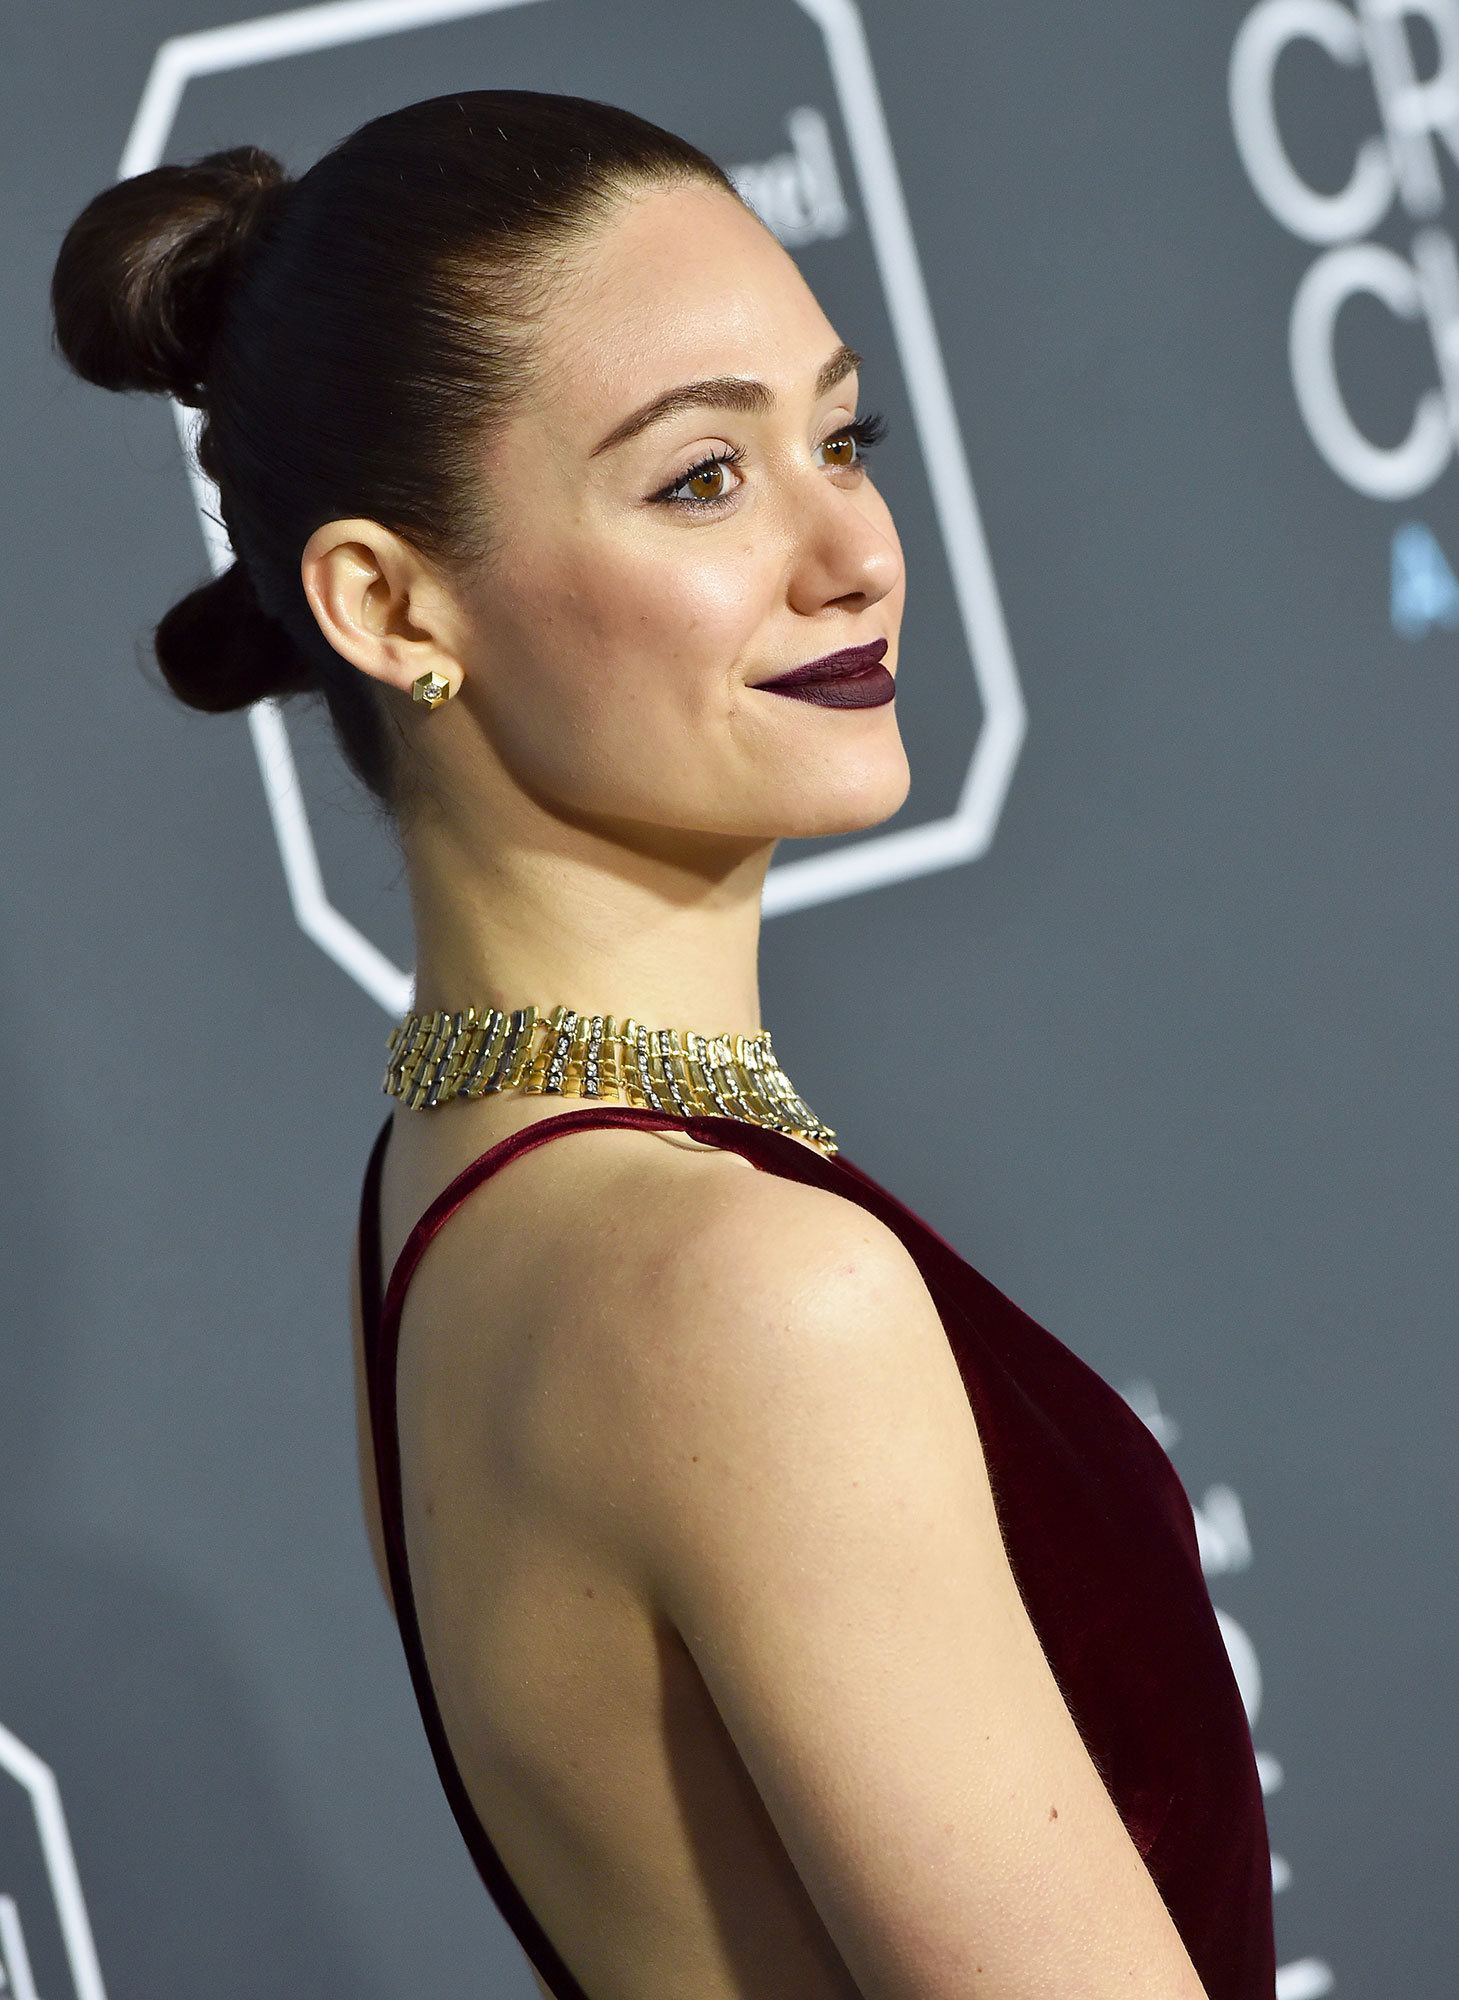 Emmy Rossum Critics' Choice Awards 2019 - With a sculpted chignon with double buns by hairstylist Giannandrea and retro black cherry lips by makeup pro Jo Baker.